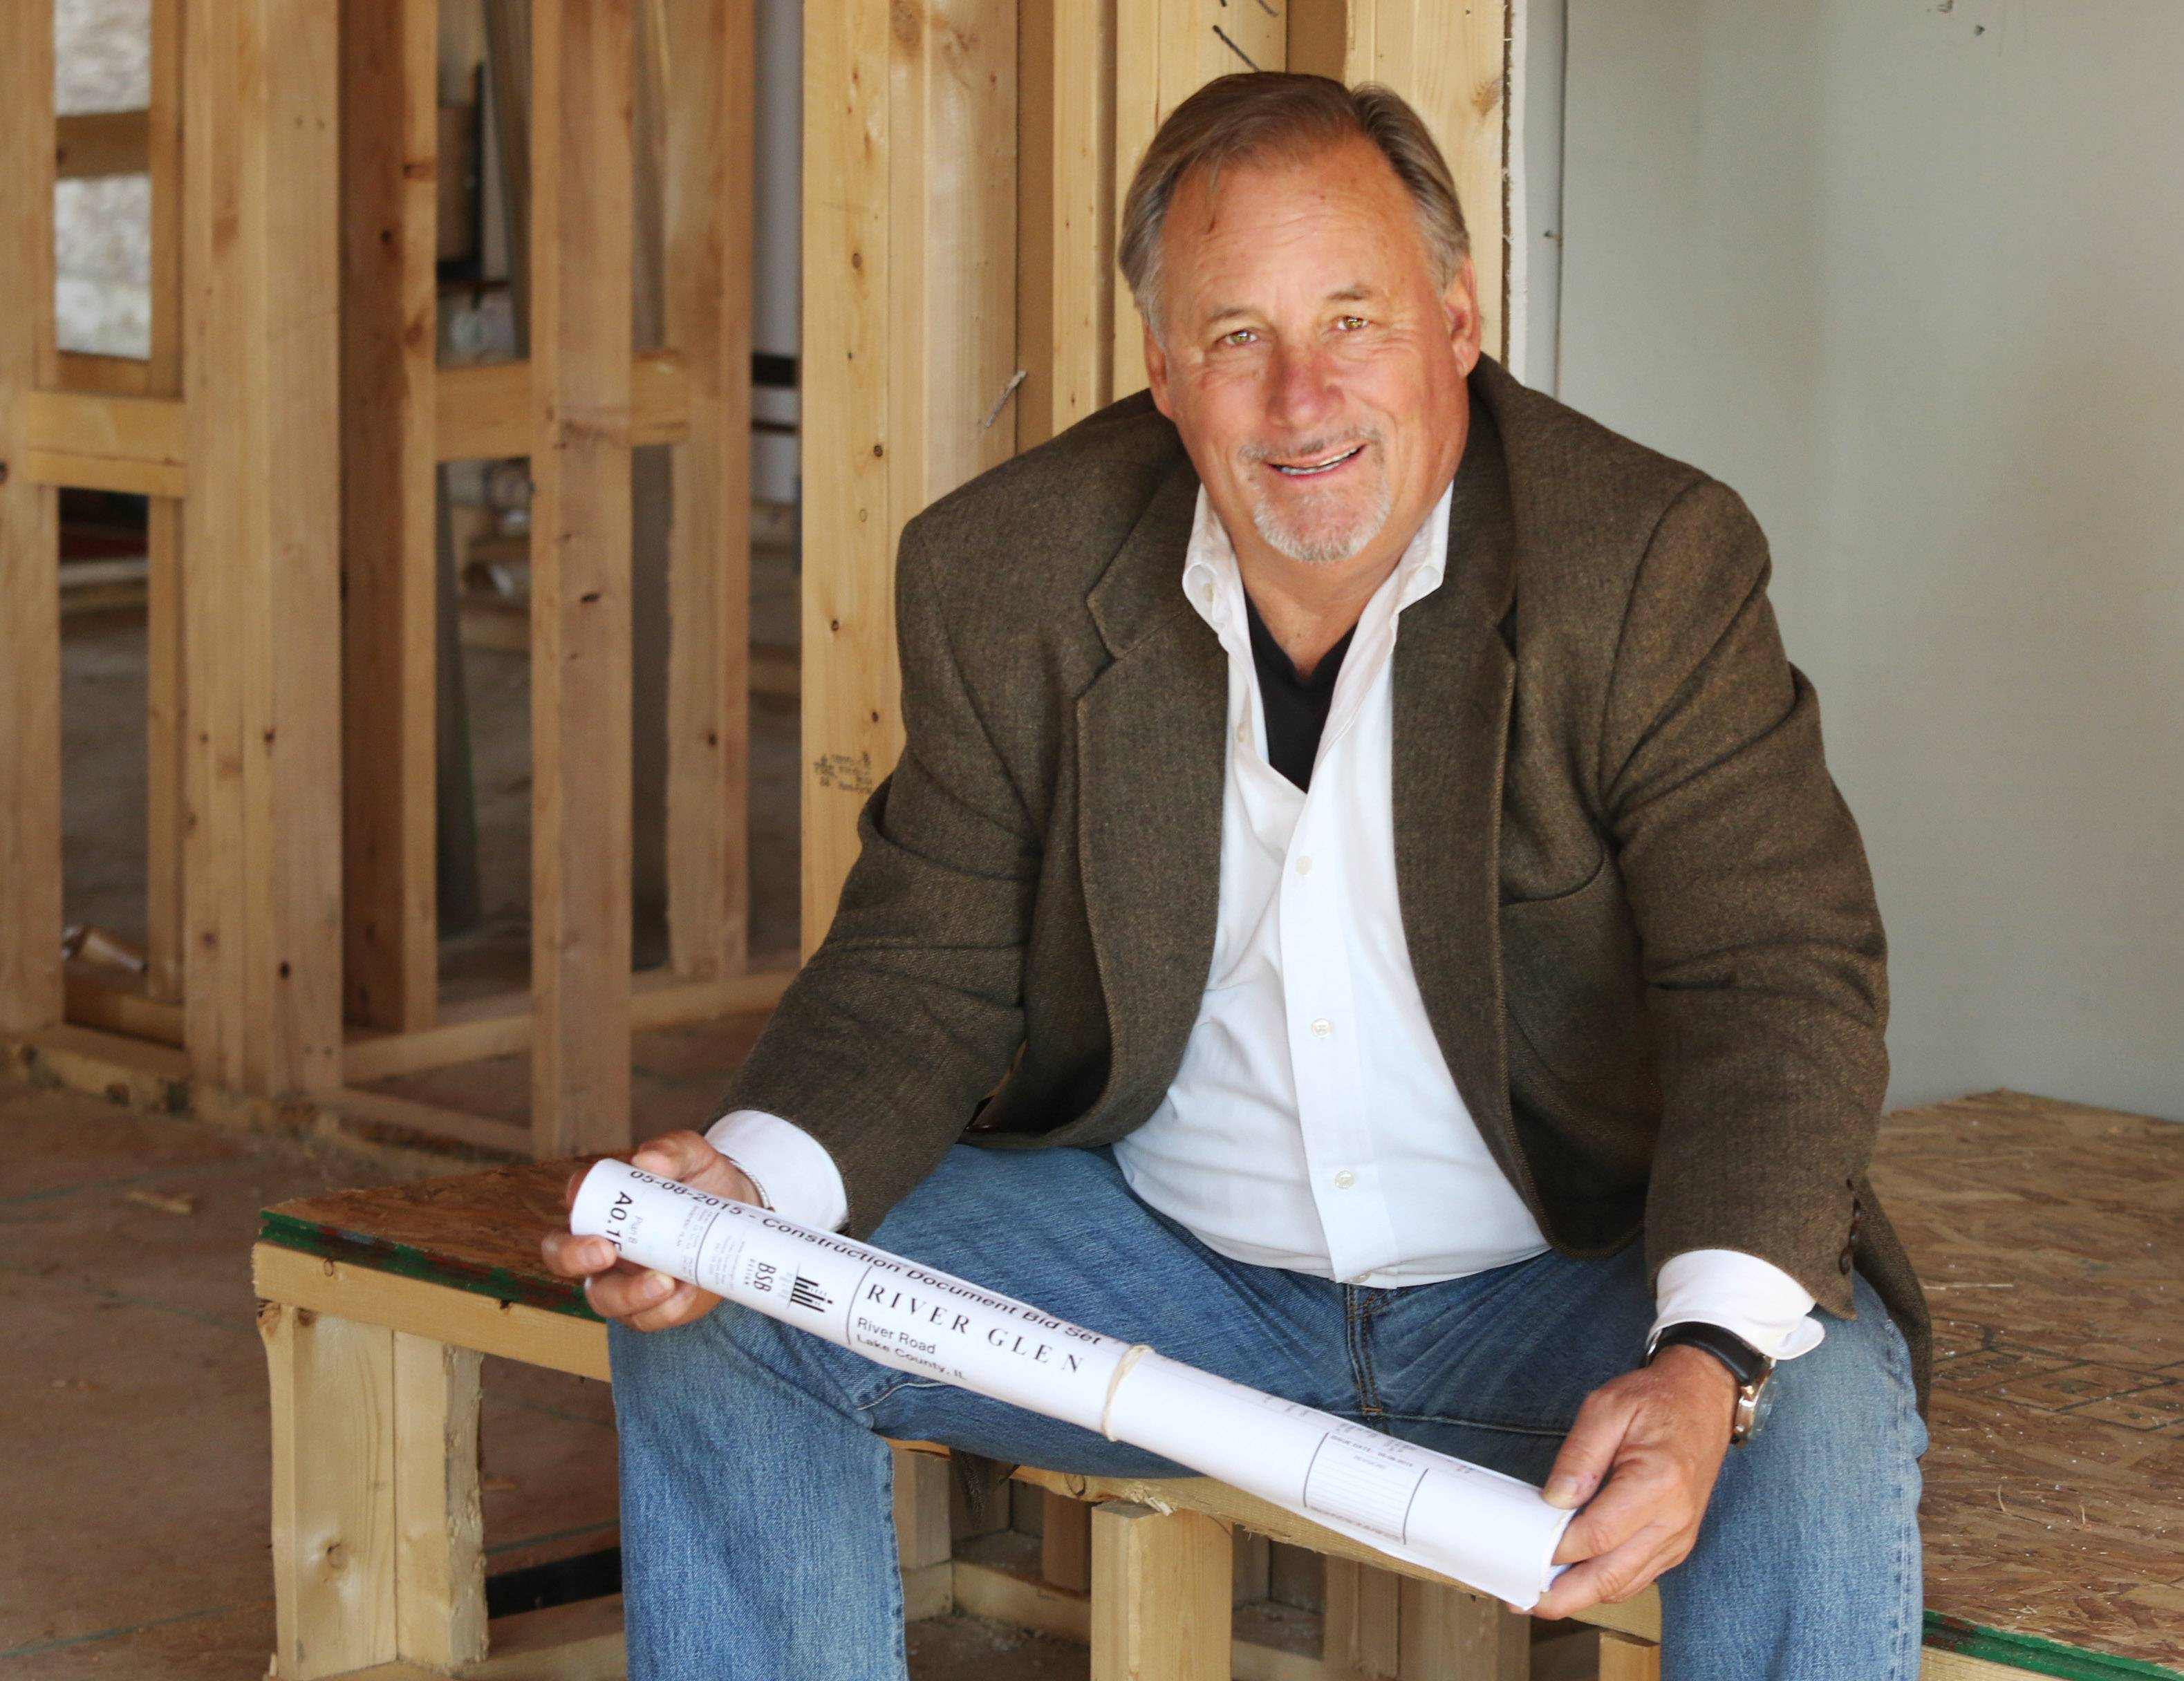 Mark Loeb's company, River Glen Custom Homes in Waukegan, is building a new residential community in Libertyville.